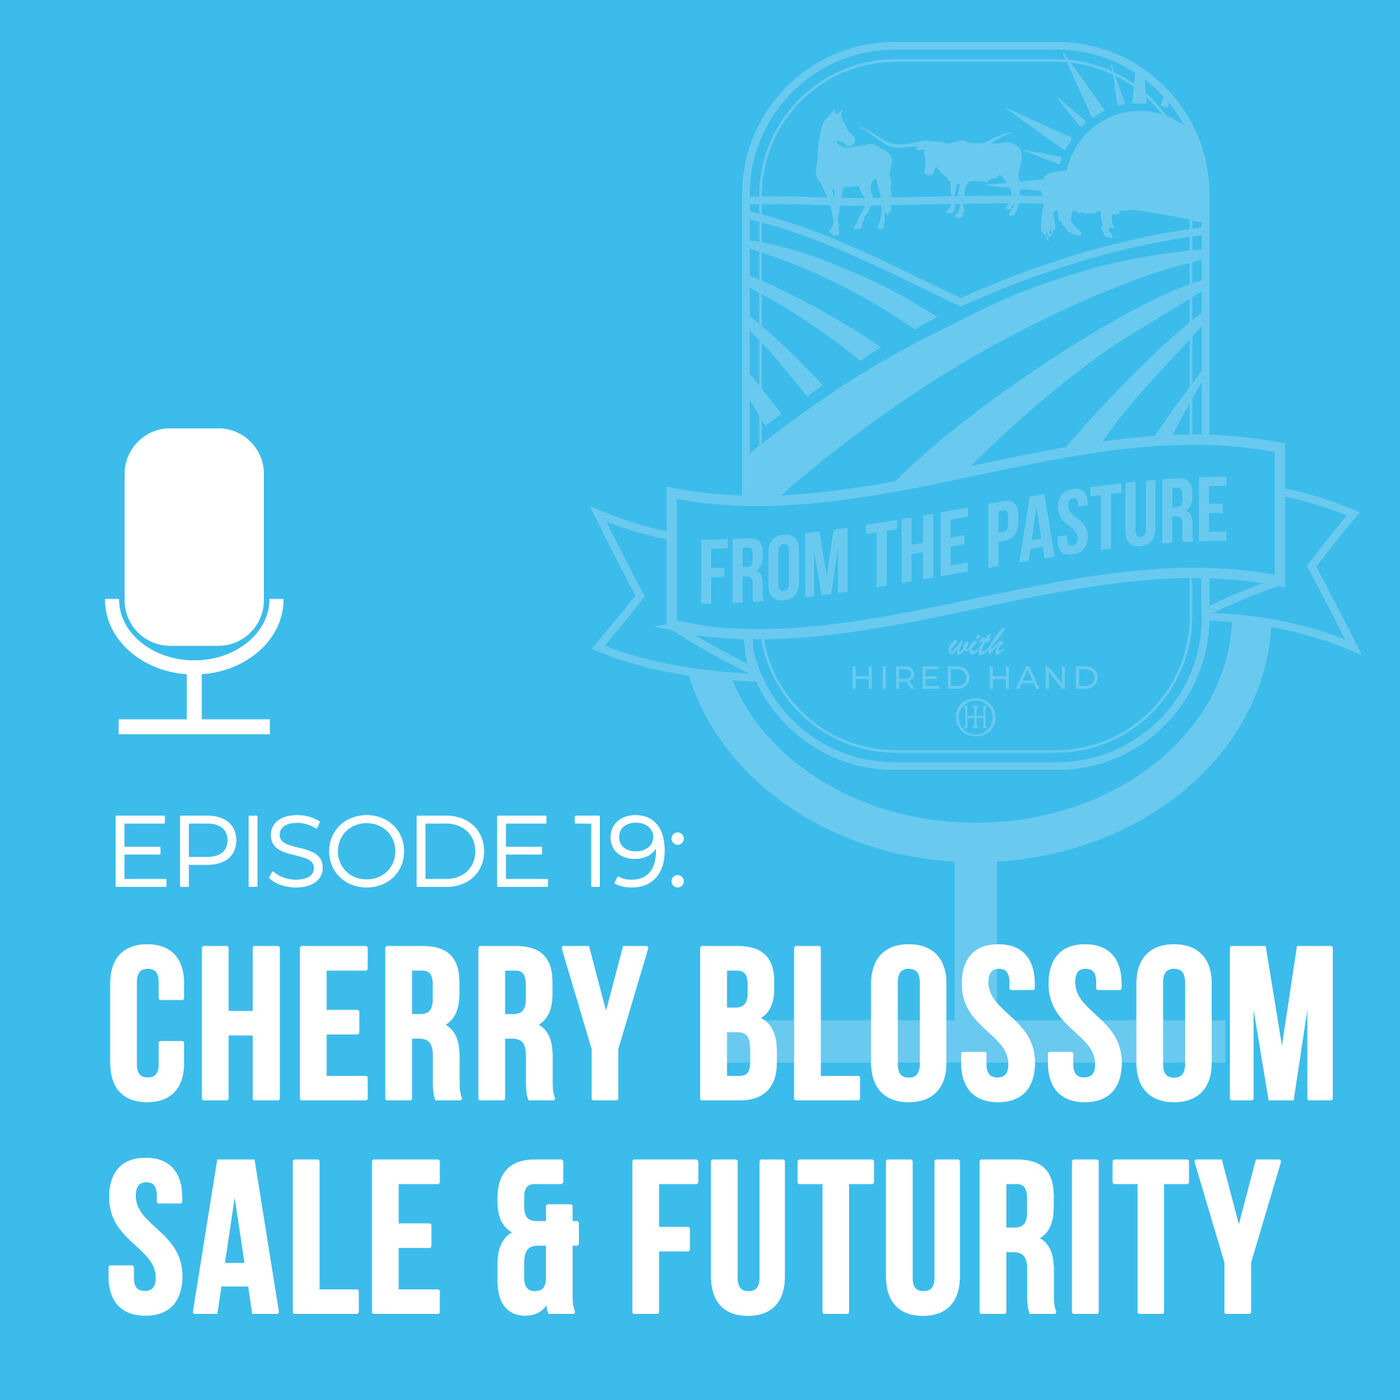 Cherry Blossom Sale and Futurity